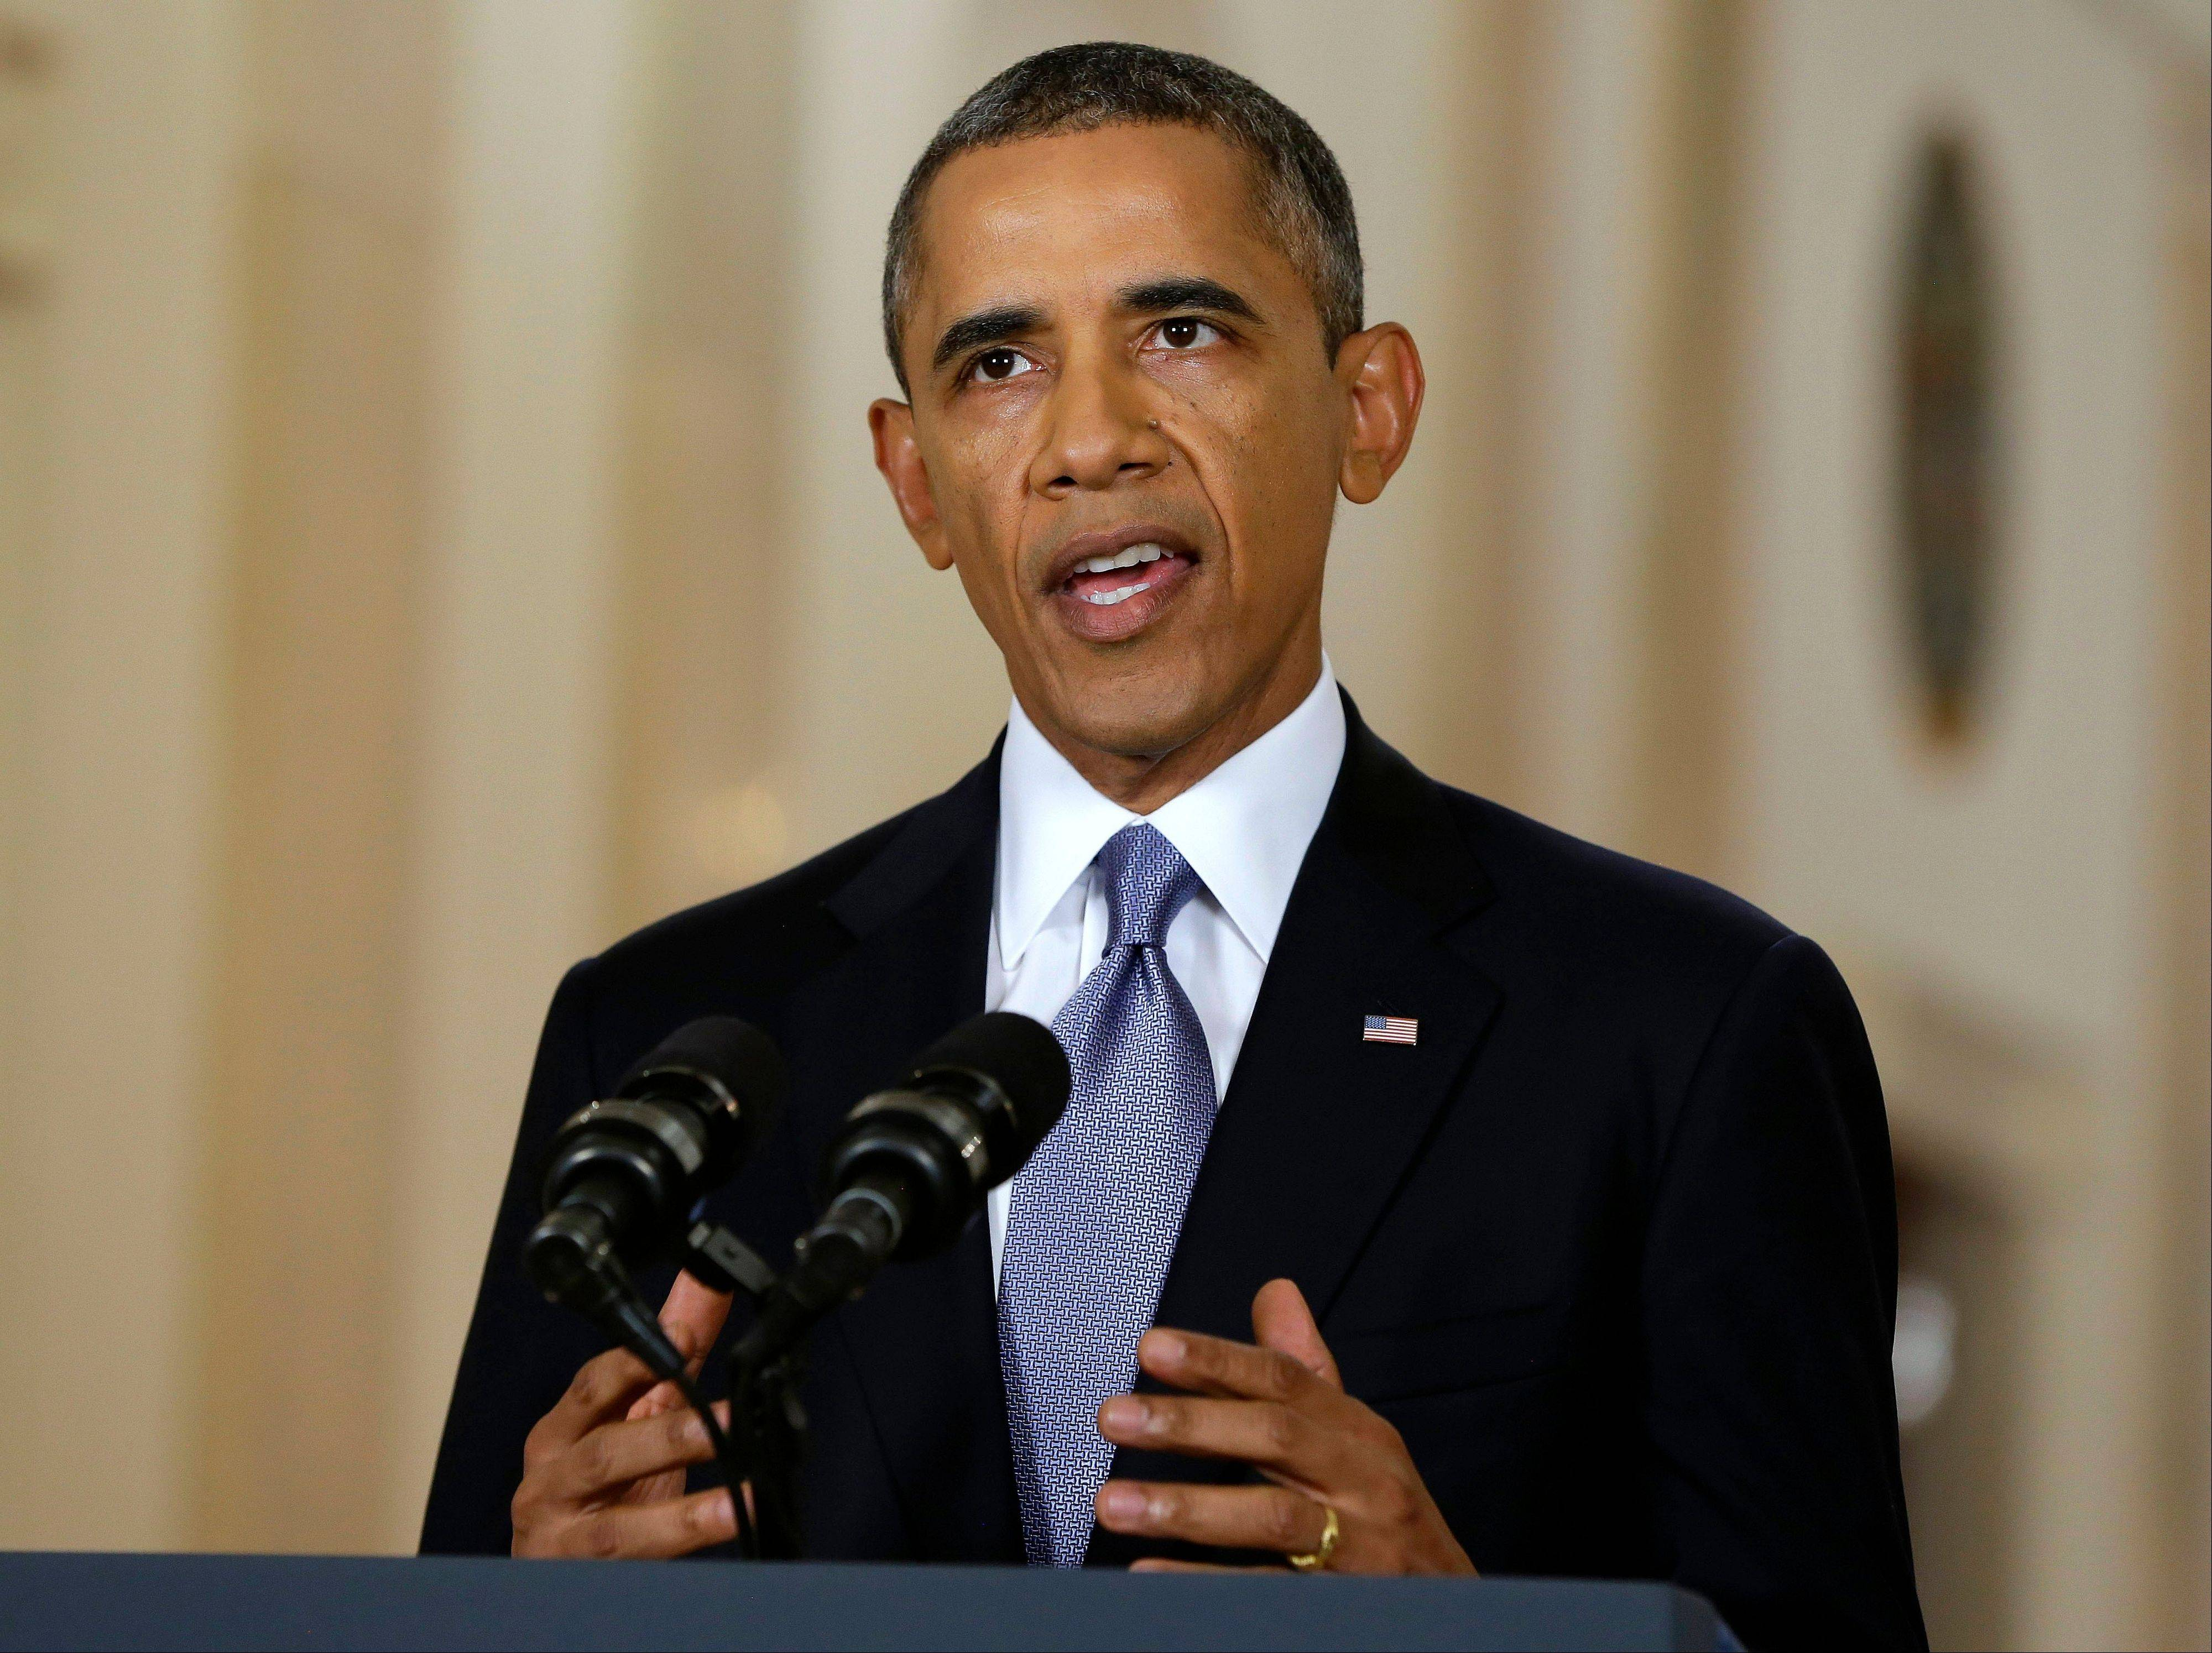 Obama delays Syria vote, says diplomacy may work